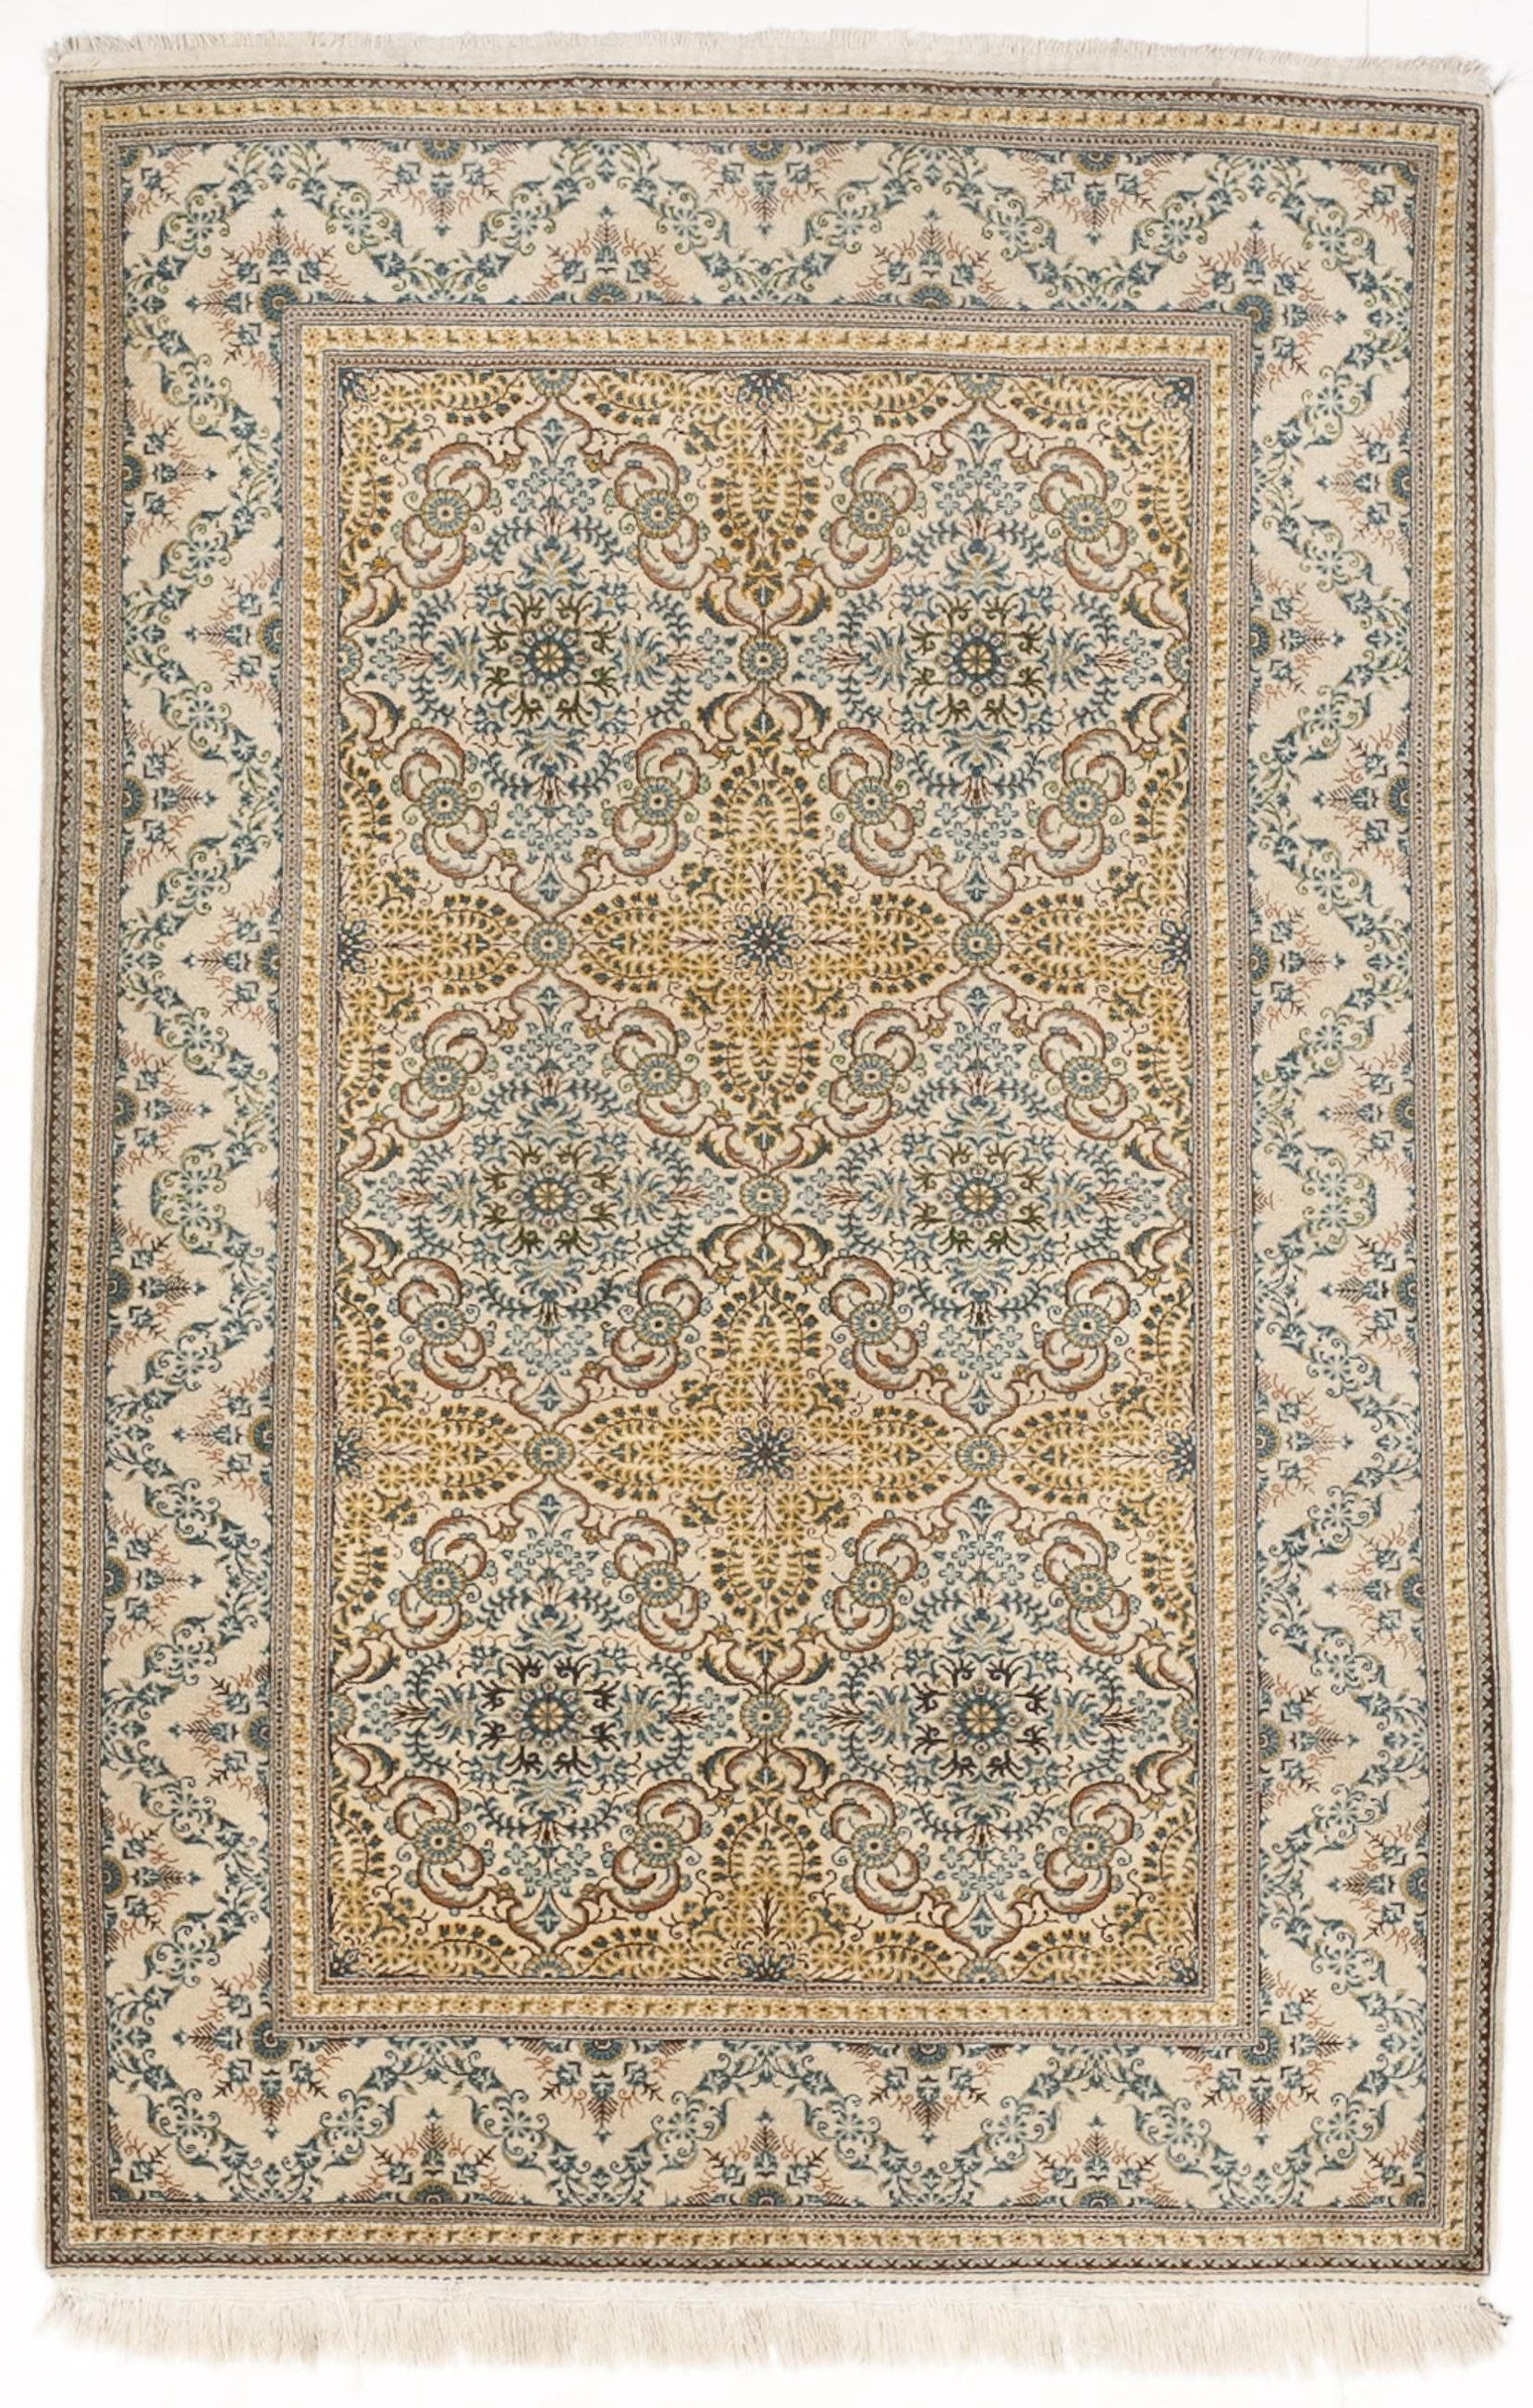 Nlr 196 Rare Semi Antique Kashan Rug Of Unusual Design 4 5 X 6 10 By Nasserluxuryrugs On Etsy Rugs Vintage Rugs Traditional Rugs